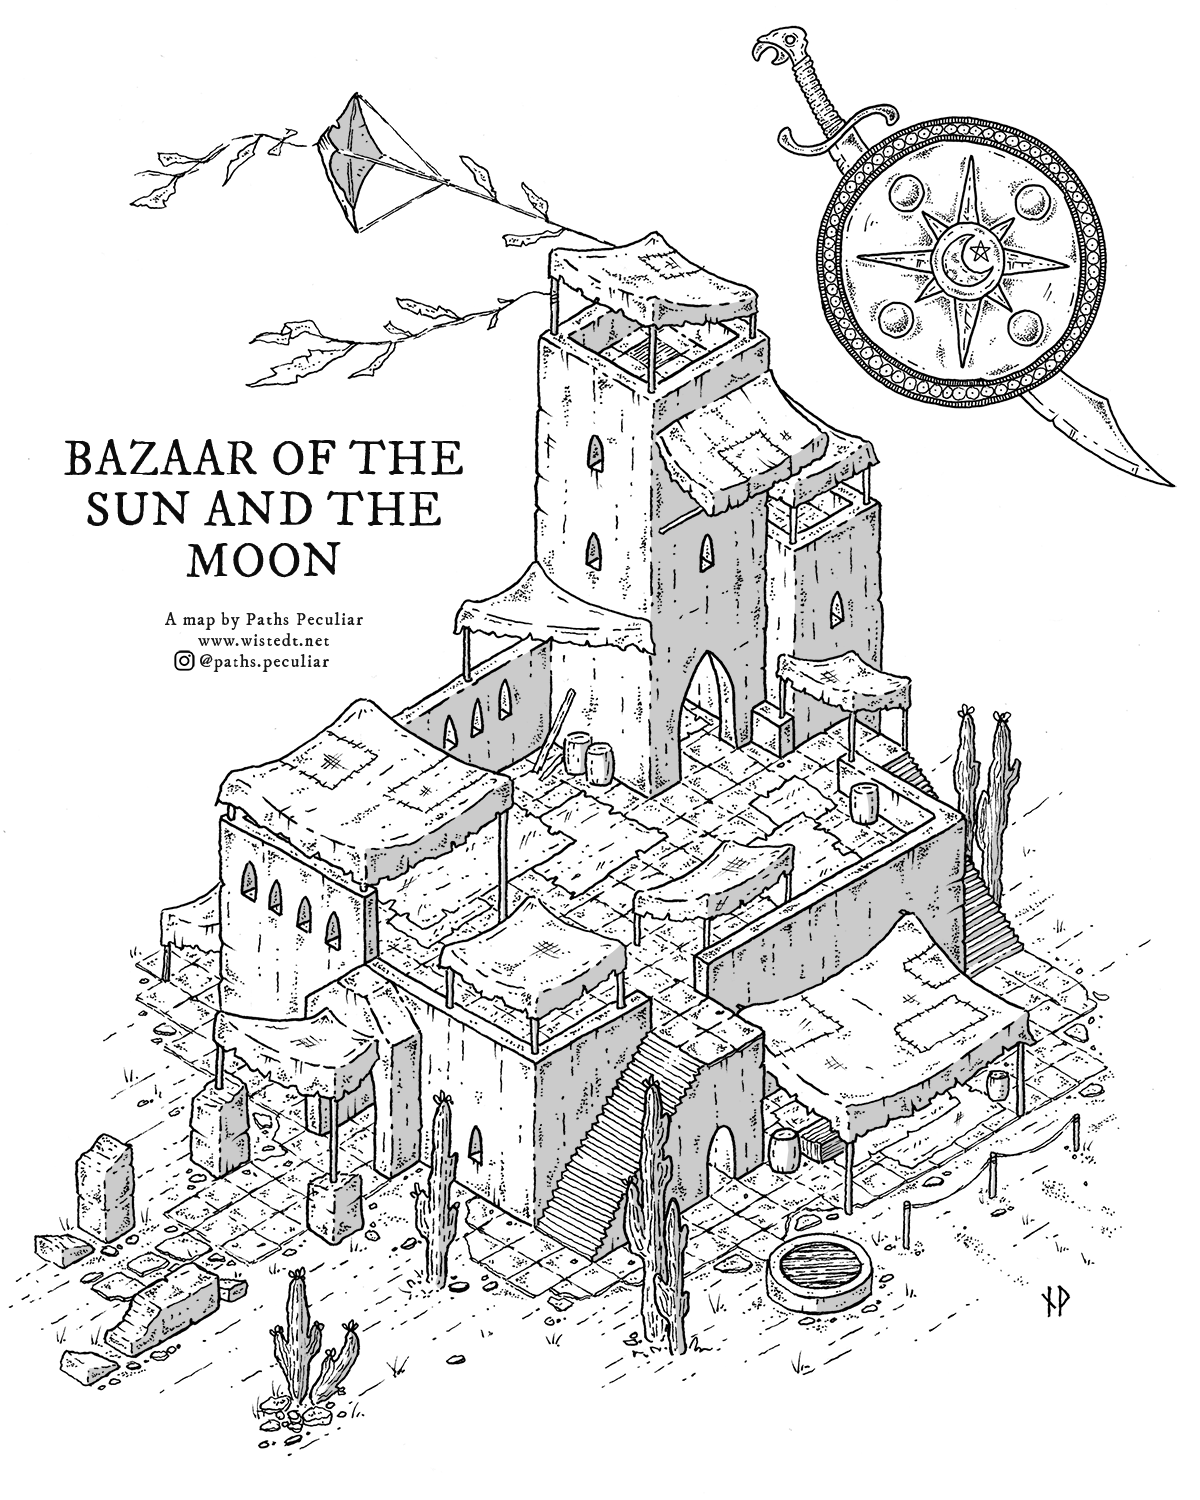 The Bazaar of the Sun and the Moon – isometric map